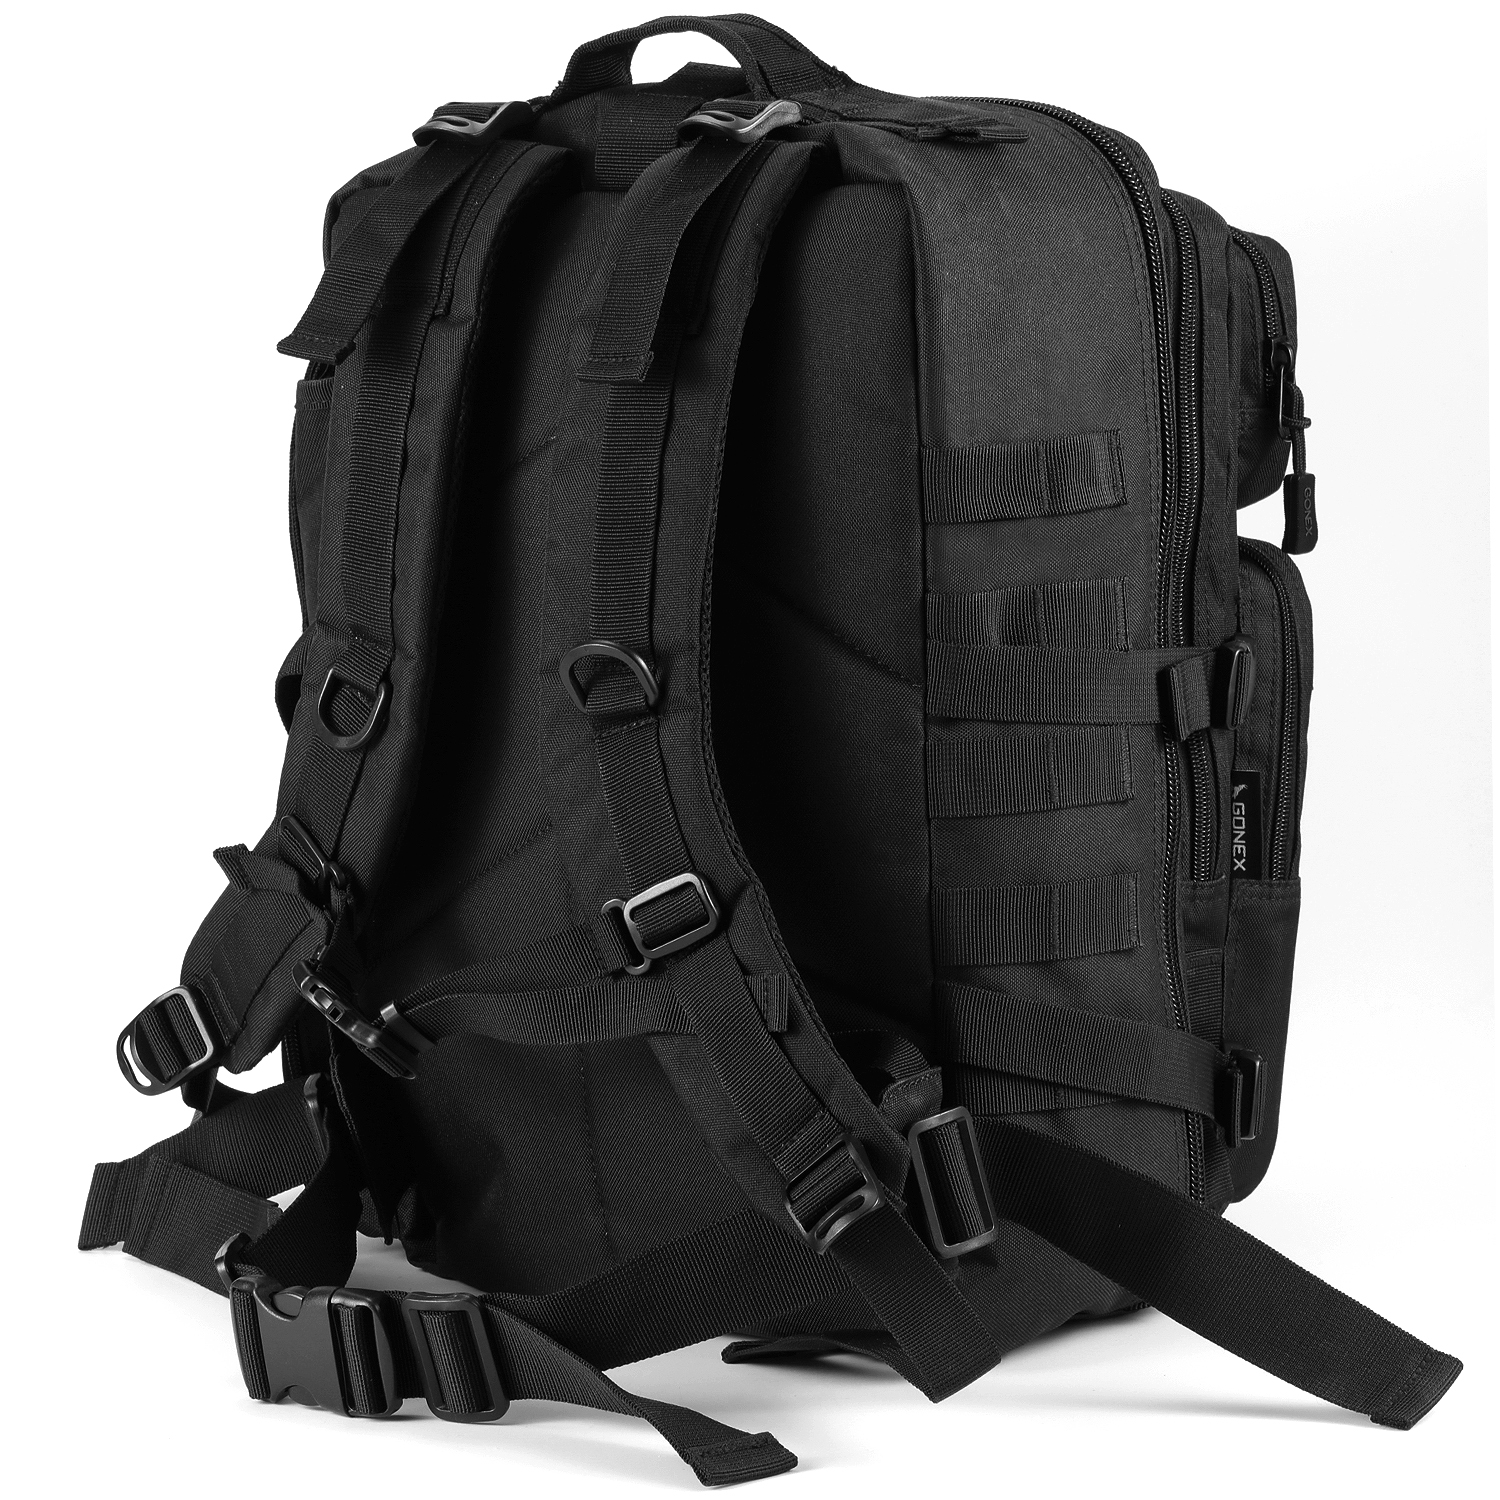 Military Backpack Rucksack Army Bag Black KALIDI MOLLE Assault Backpack 35L